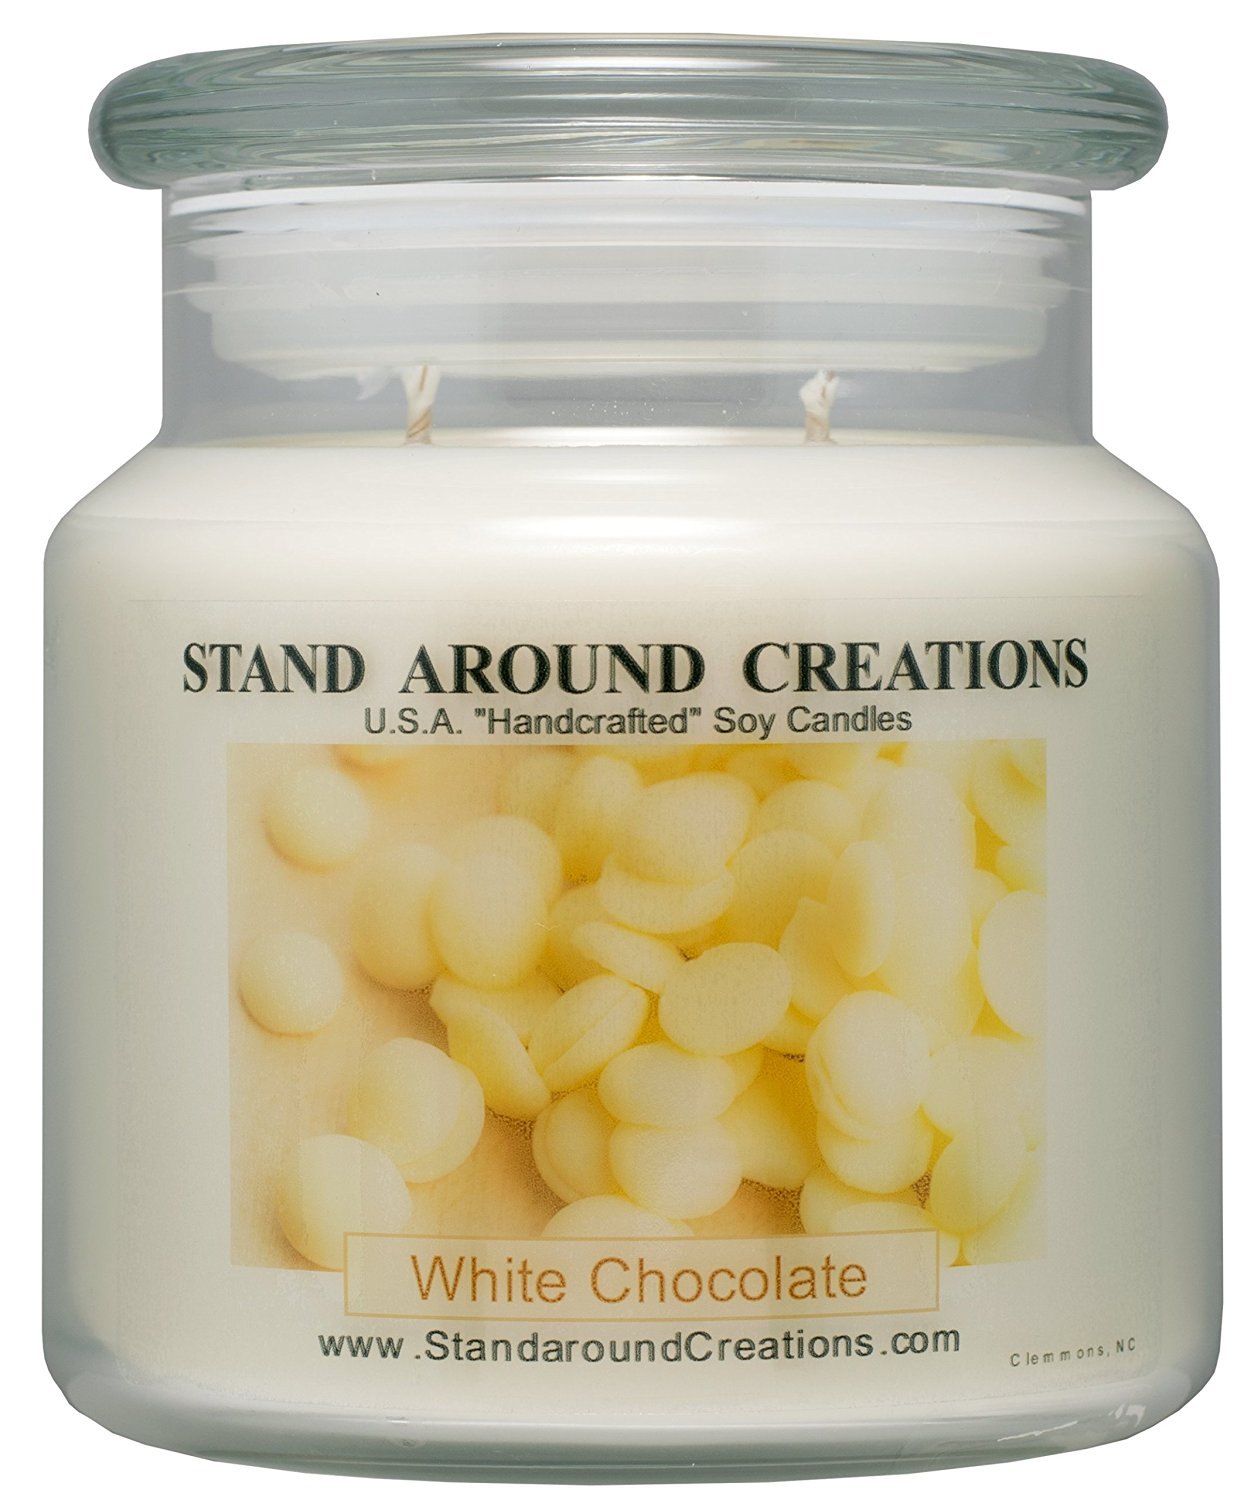 Premium 100% Soy Apothecary Candle - 16 oz.- White Chocolate - The aroma of creamy cocoa butter, marshmallow, white chocolate, and vanilla beans.